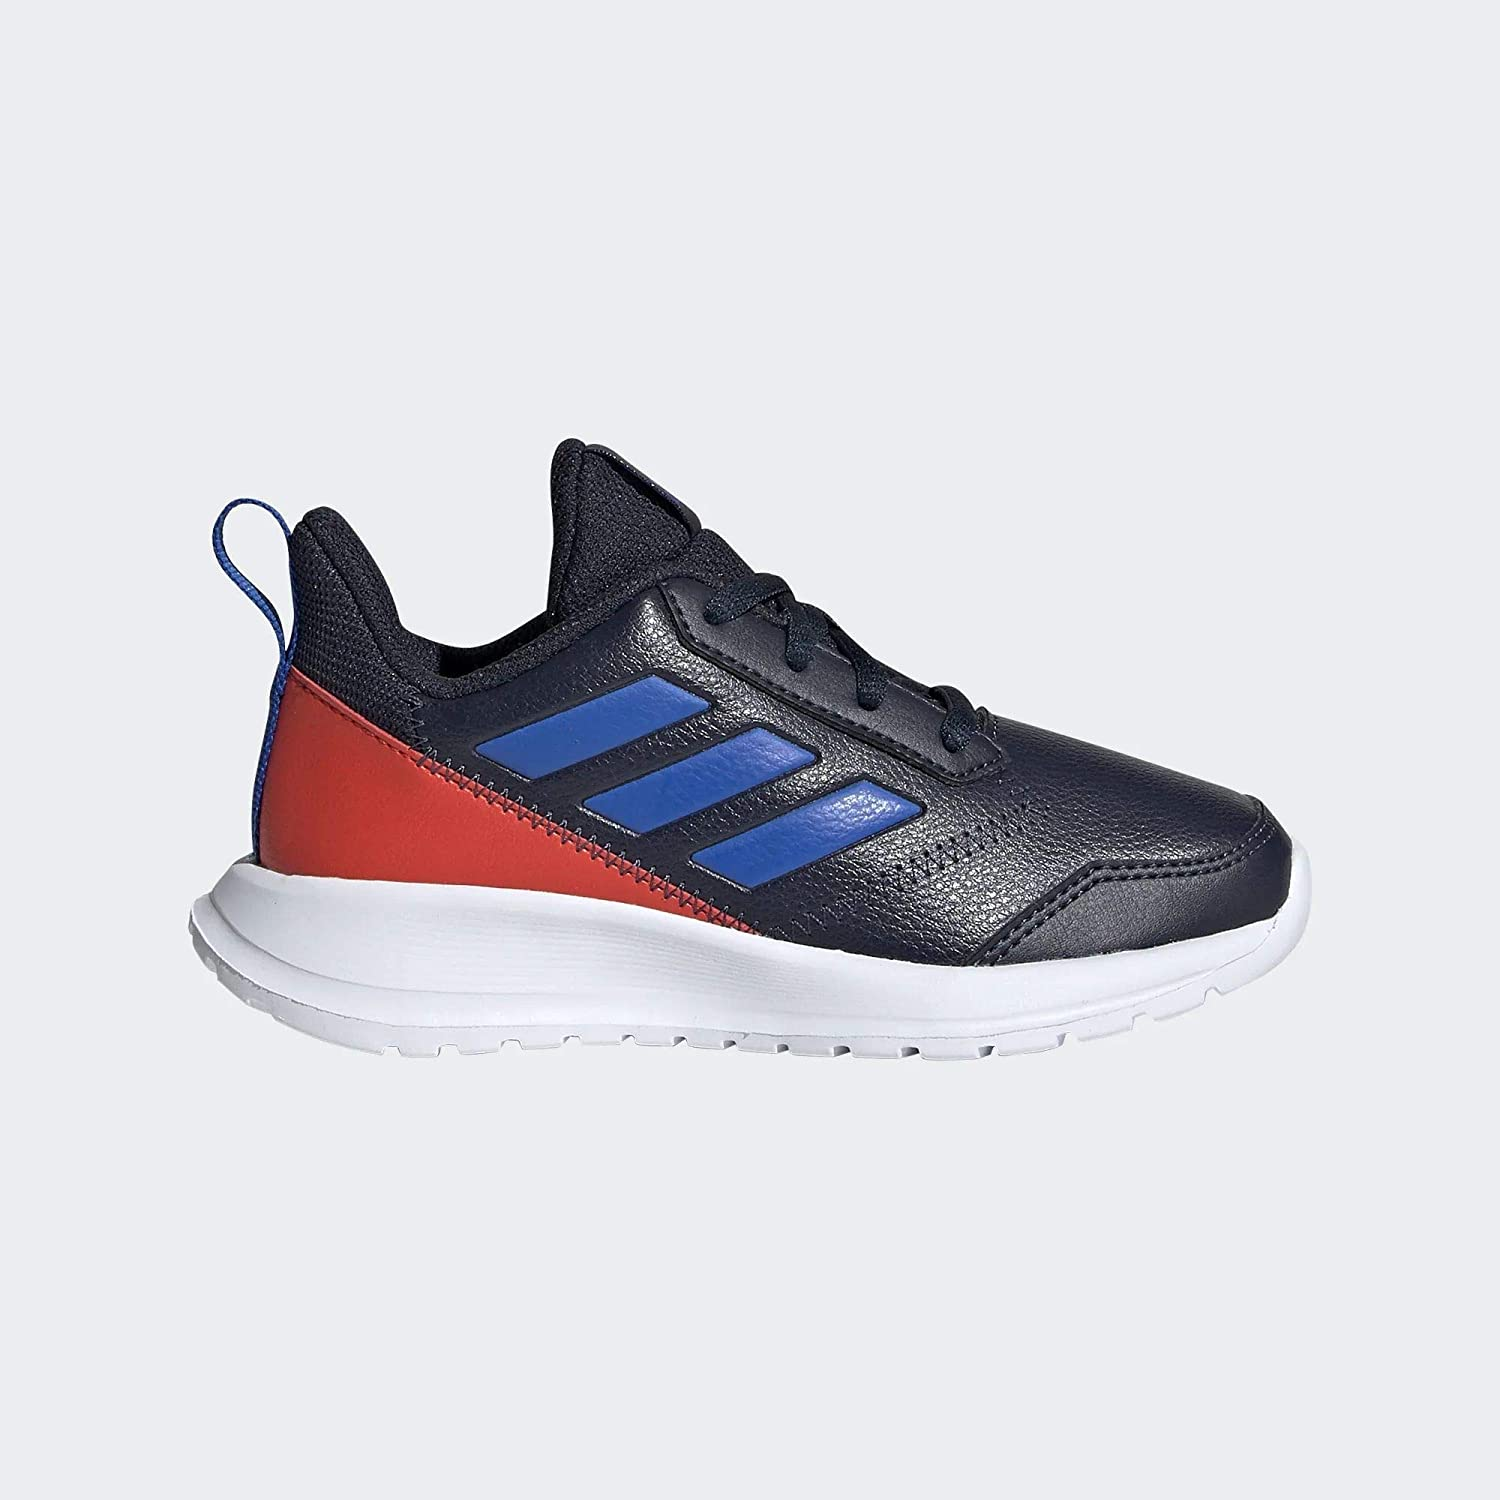 adidas Boys Shoes Running Fashion Trainers Athletics School Altarun Kids (29 EU - UK 11K - US 11.5K)